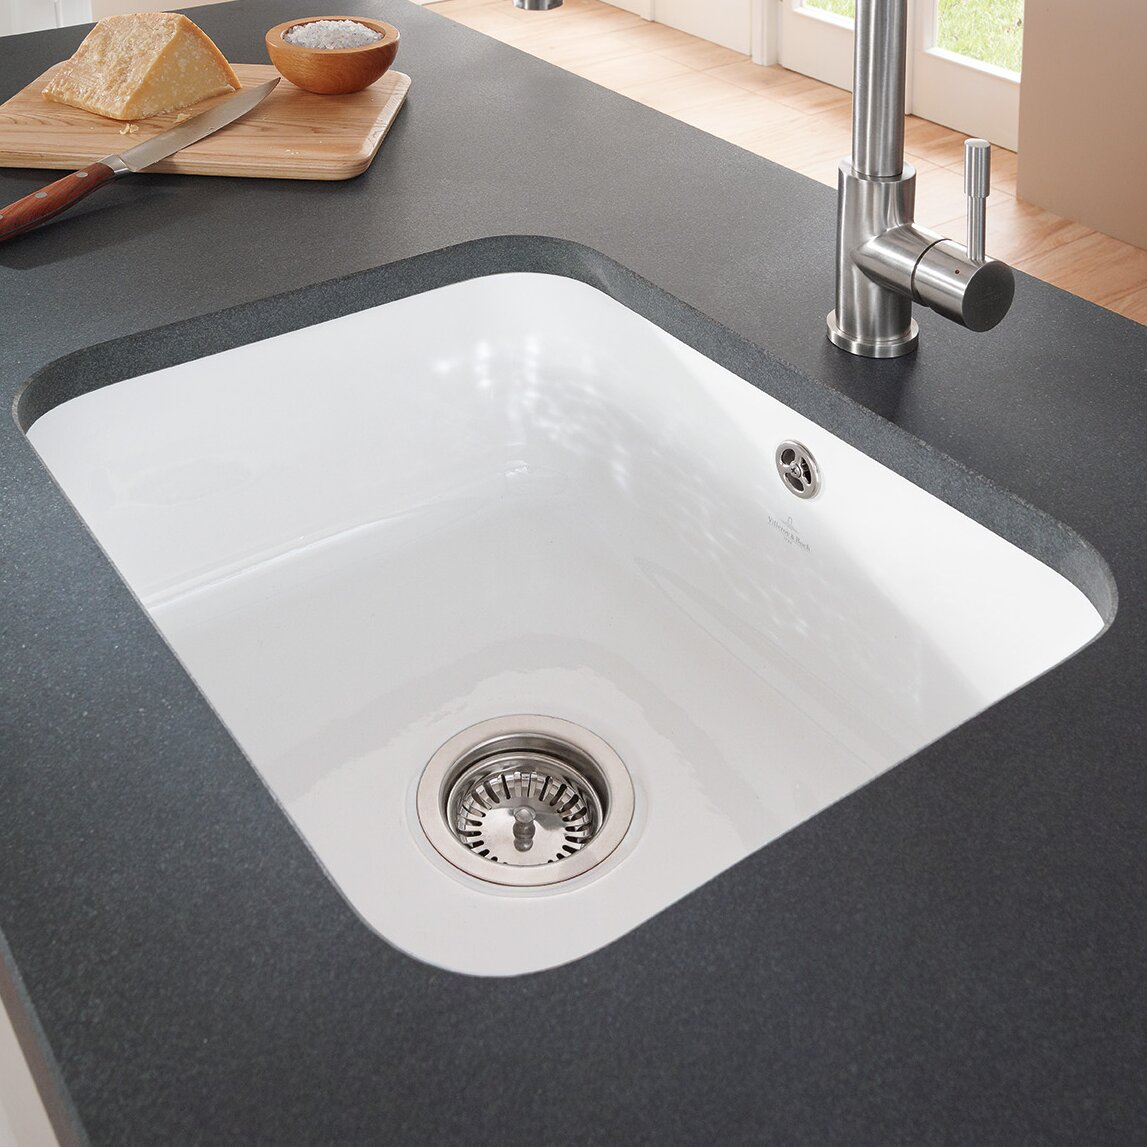 cisterna 55cm x 44cm undermount kitchen sink reviews wayfair uk